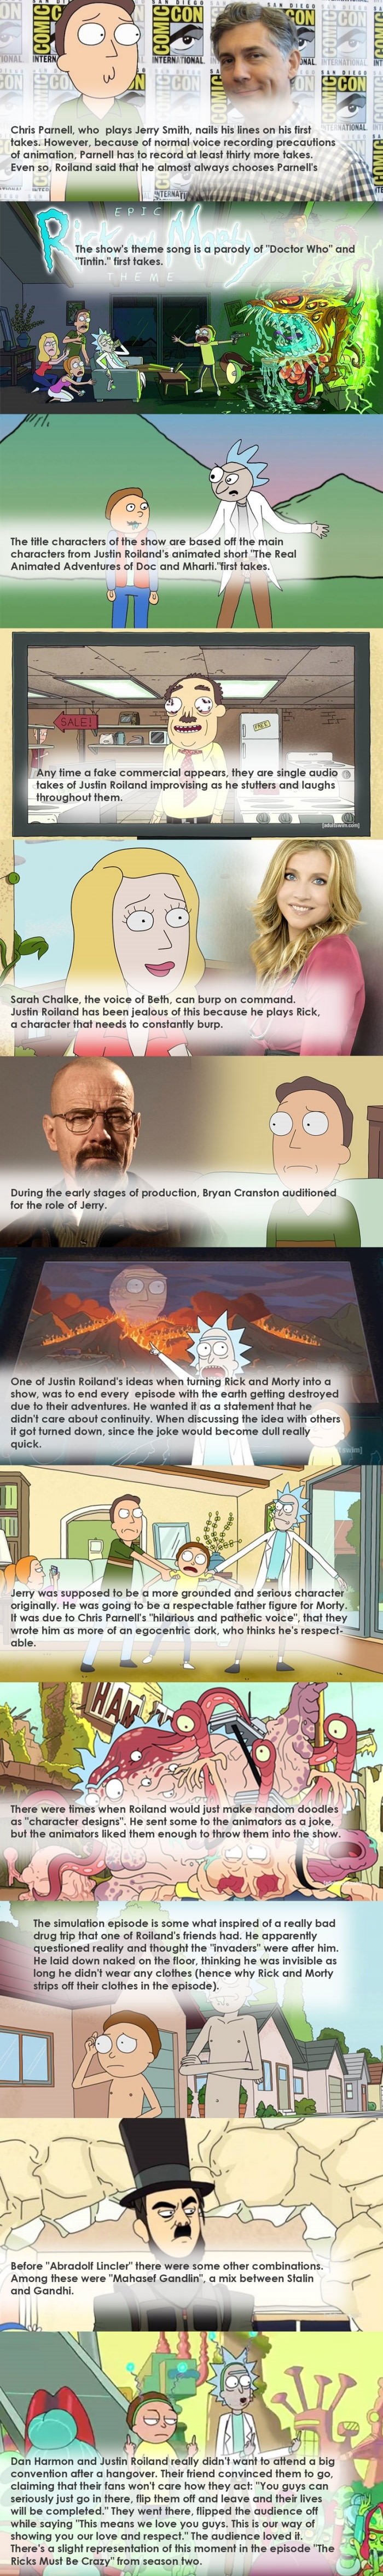 Fun facts about Rick & Morty